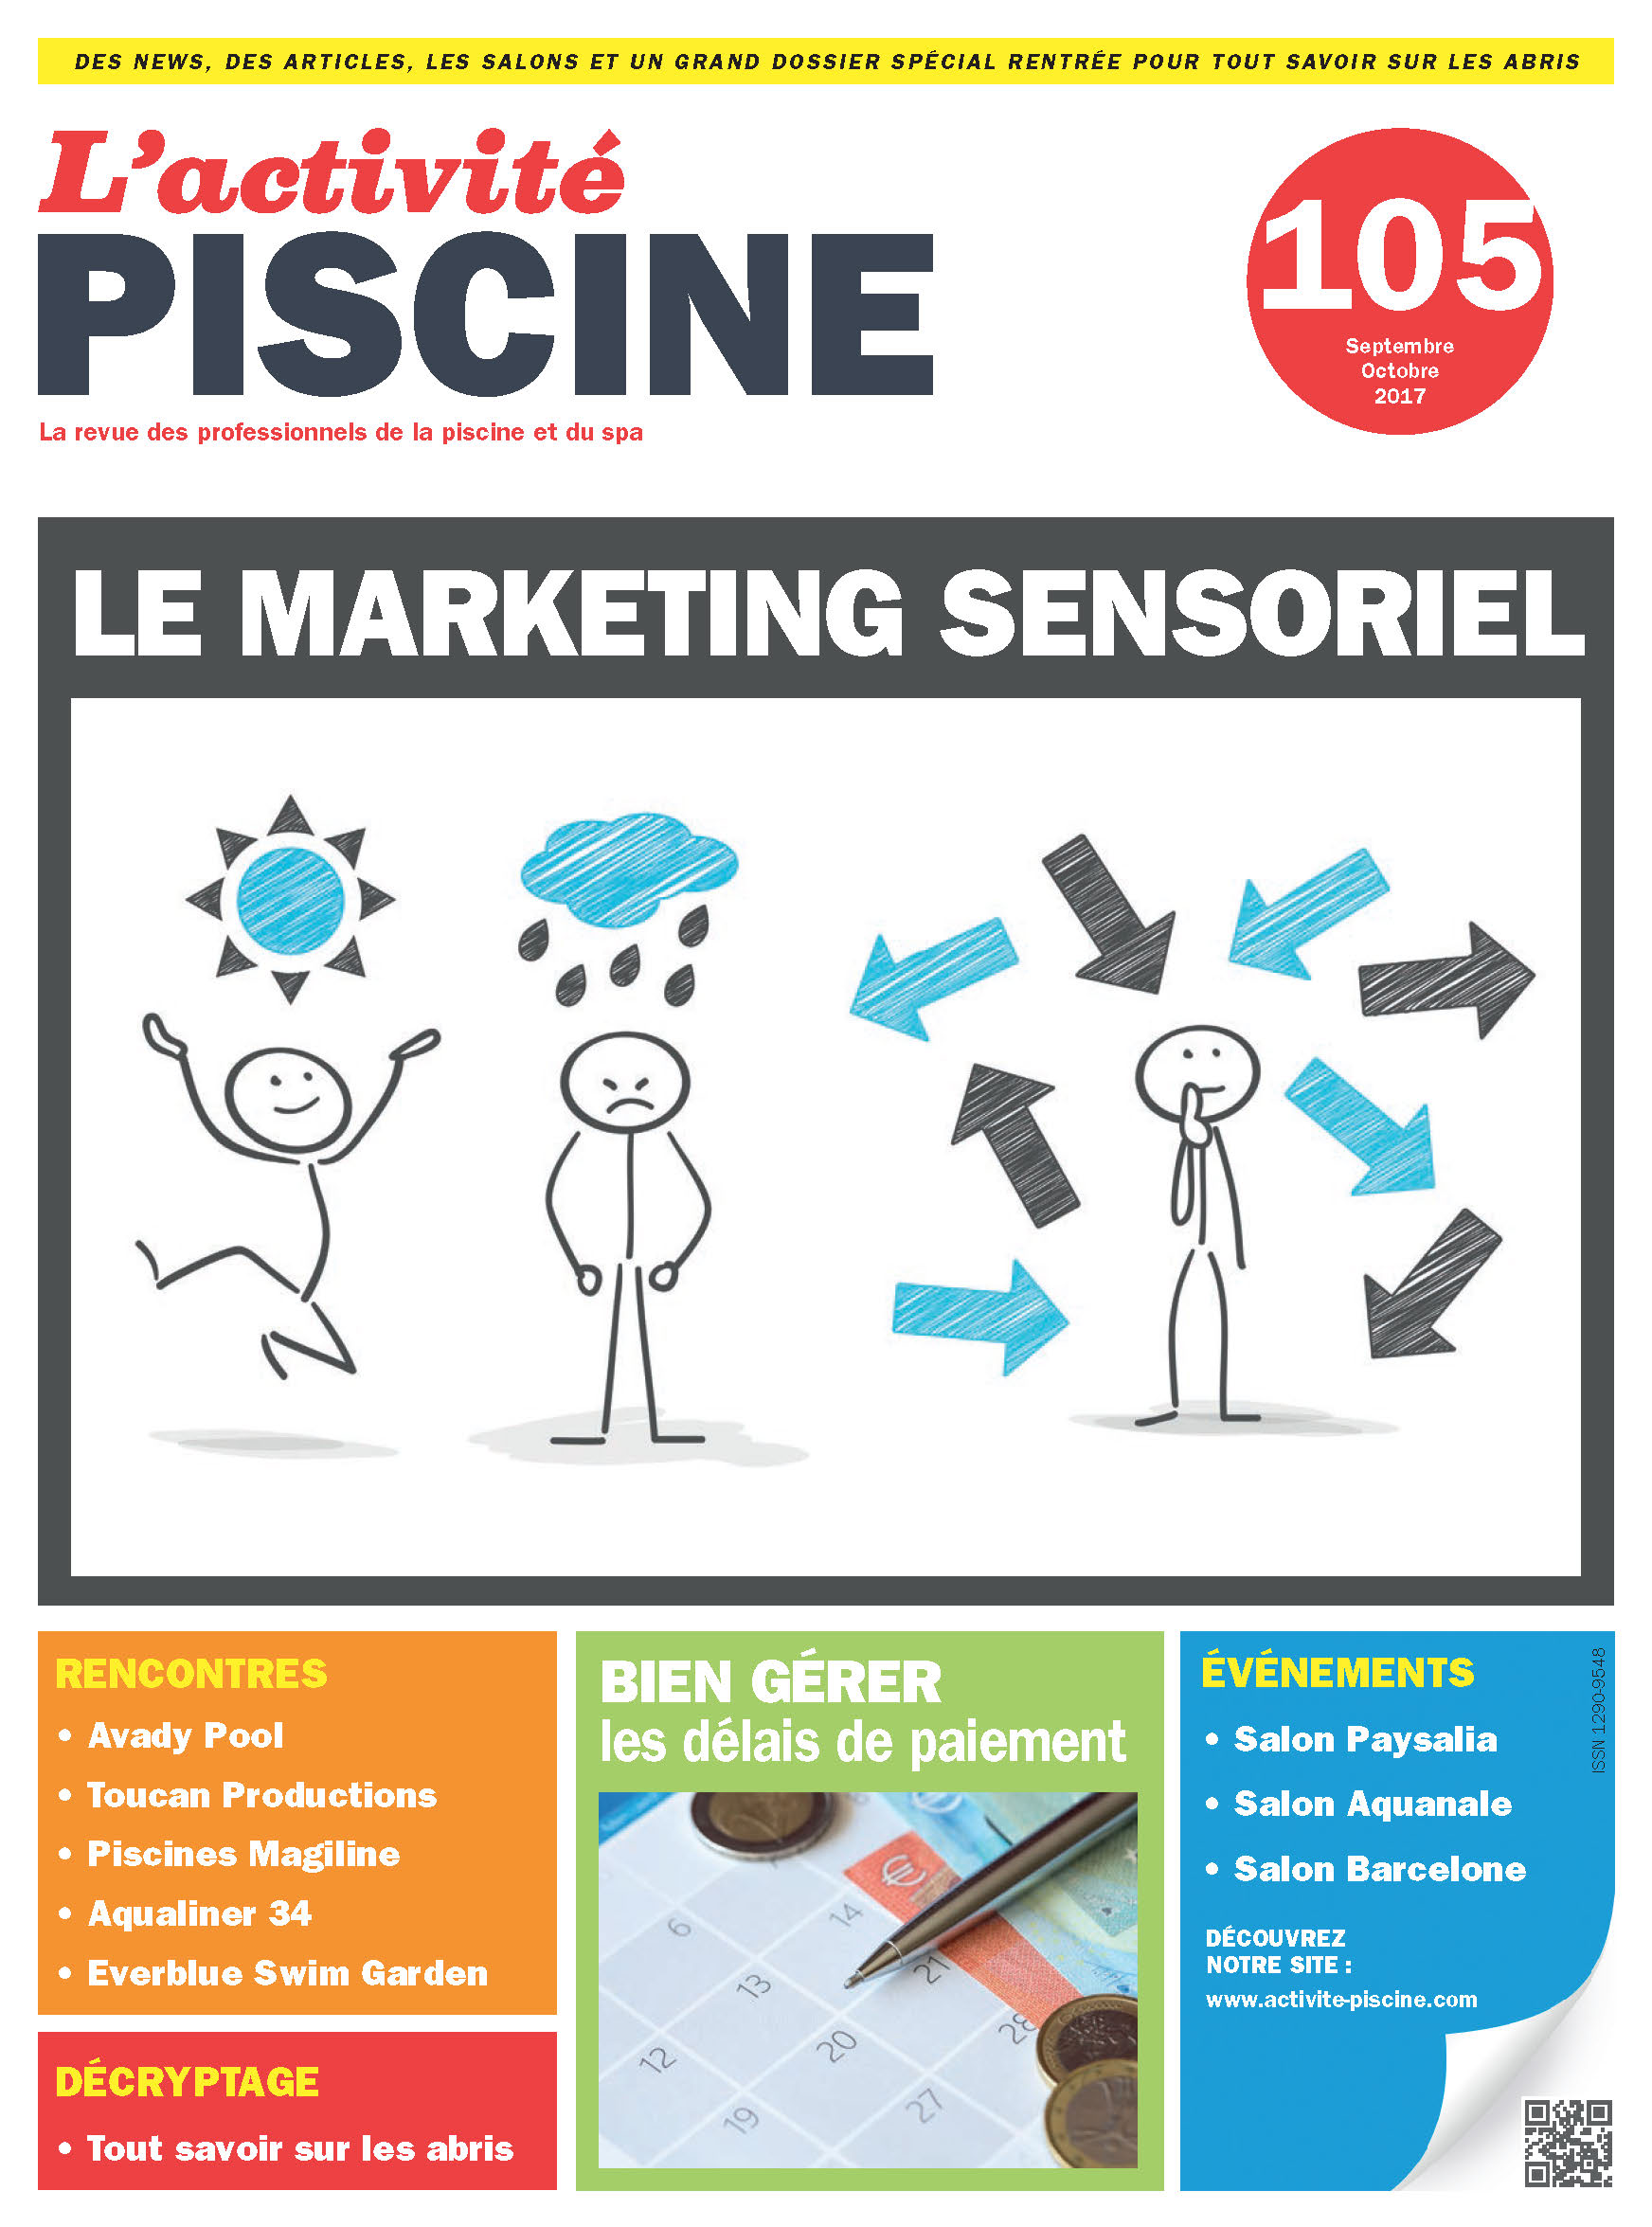 Vu dans le magazine activit piscine sept oct 2017 for Piscine labege